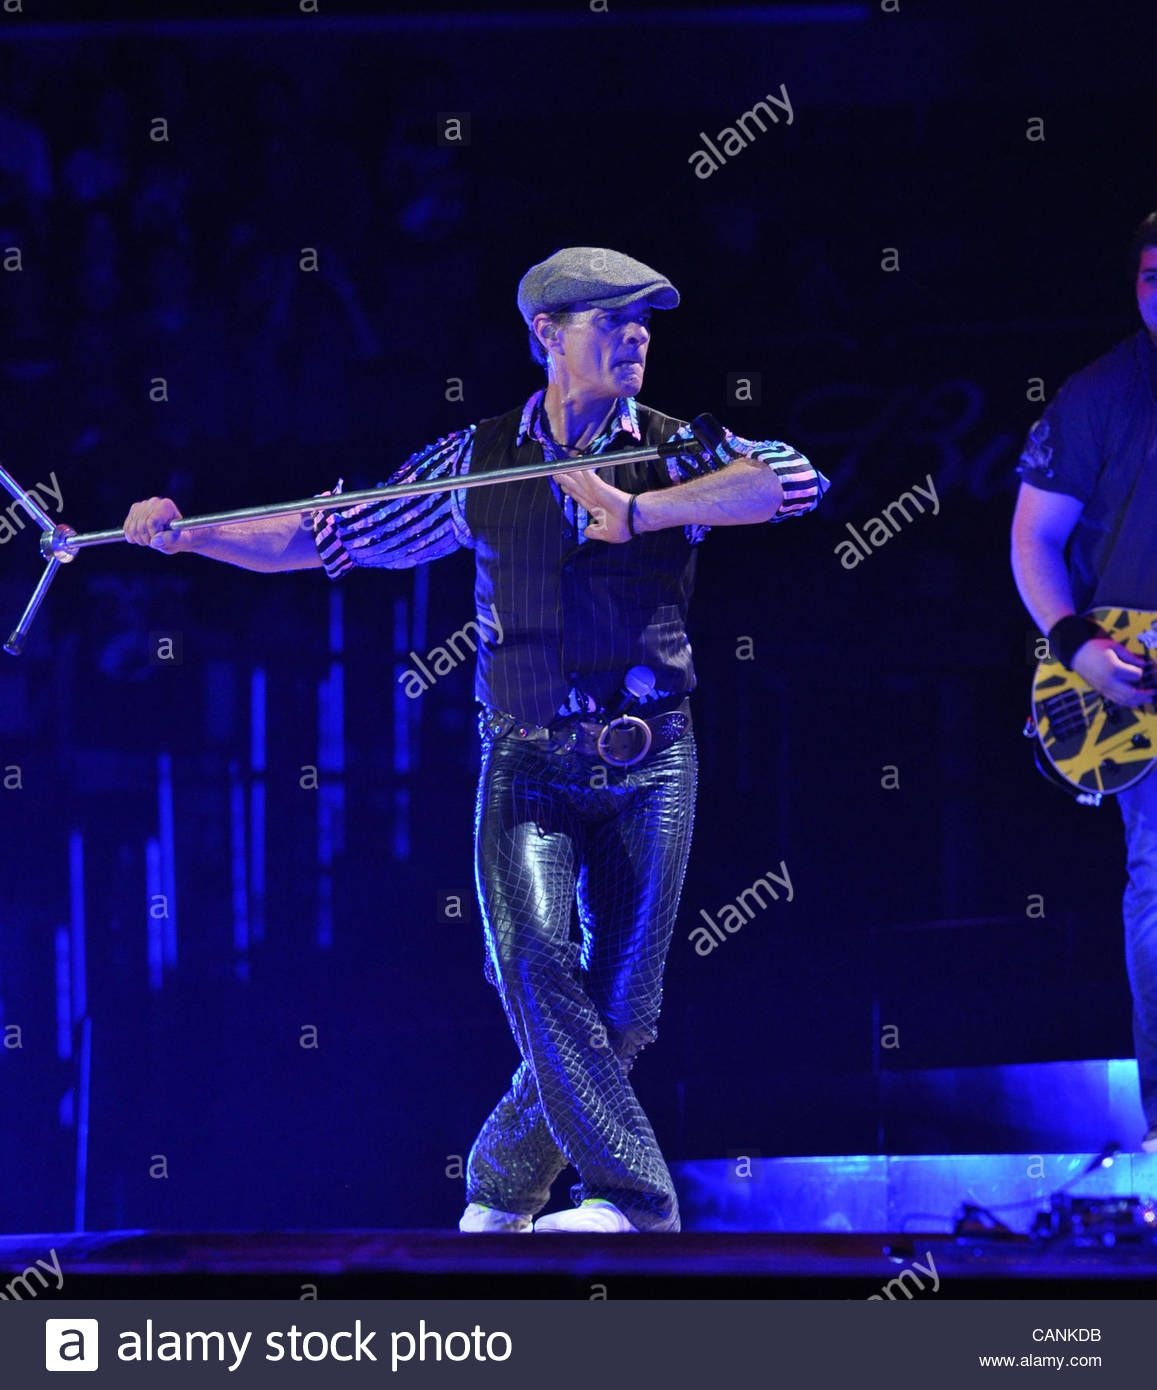 Ready To Spin That Pole I Want To See That Live Rf With Images Van Halen David Lee Roth District Of Columbia